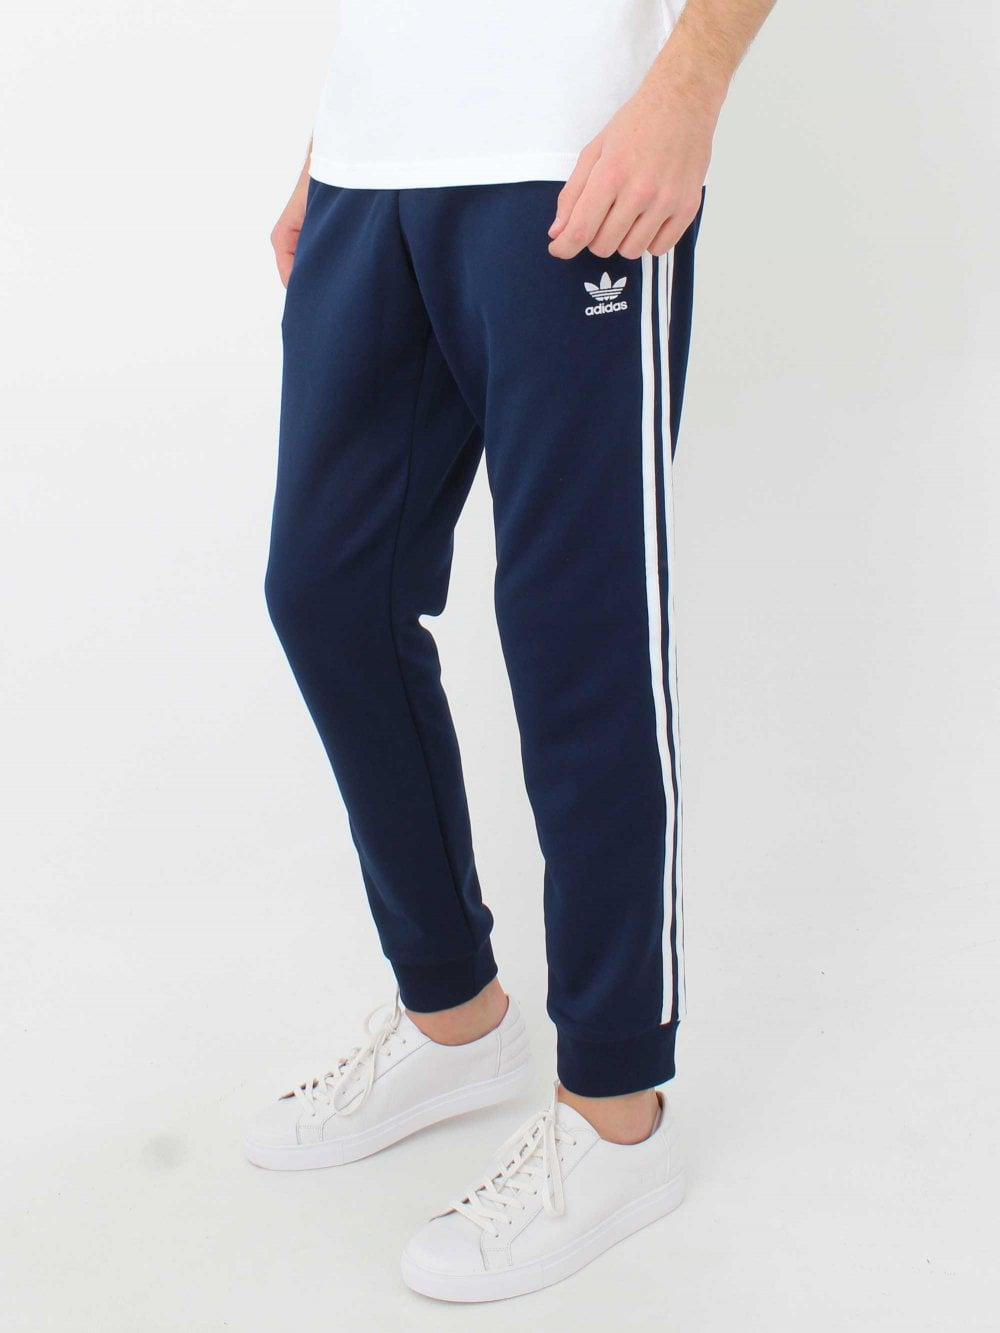 3ded9187cd9a Adidas SST Track Pants in Navy